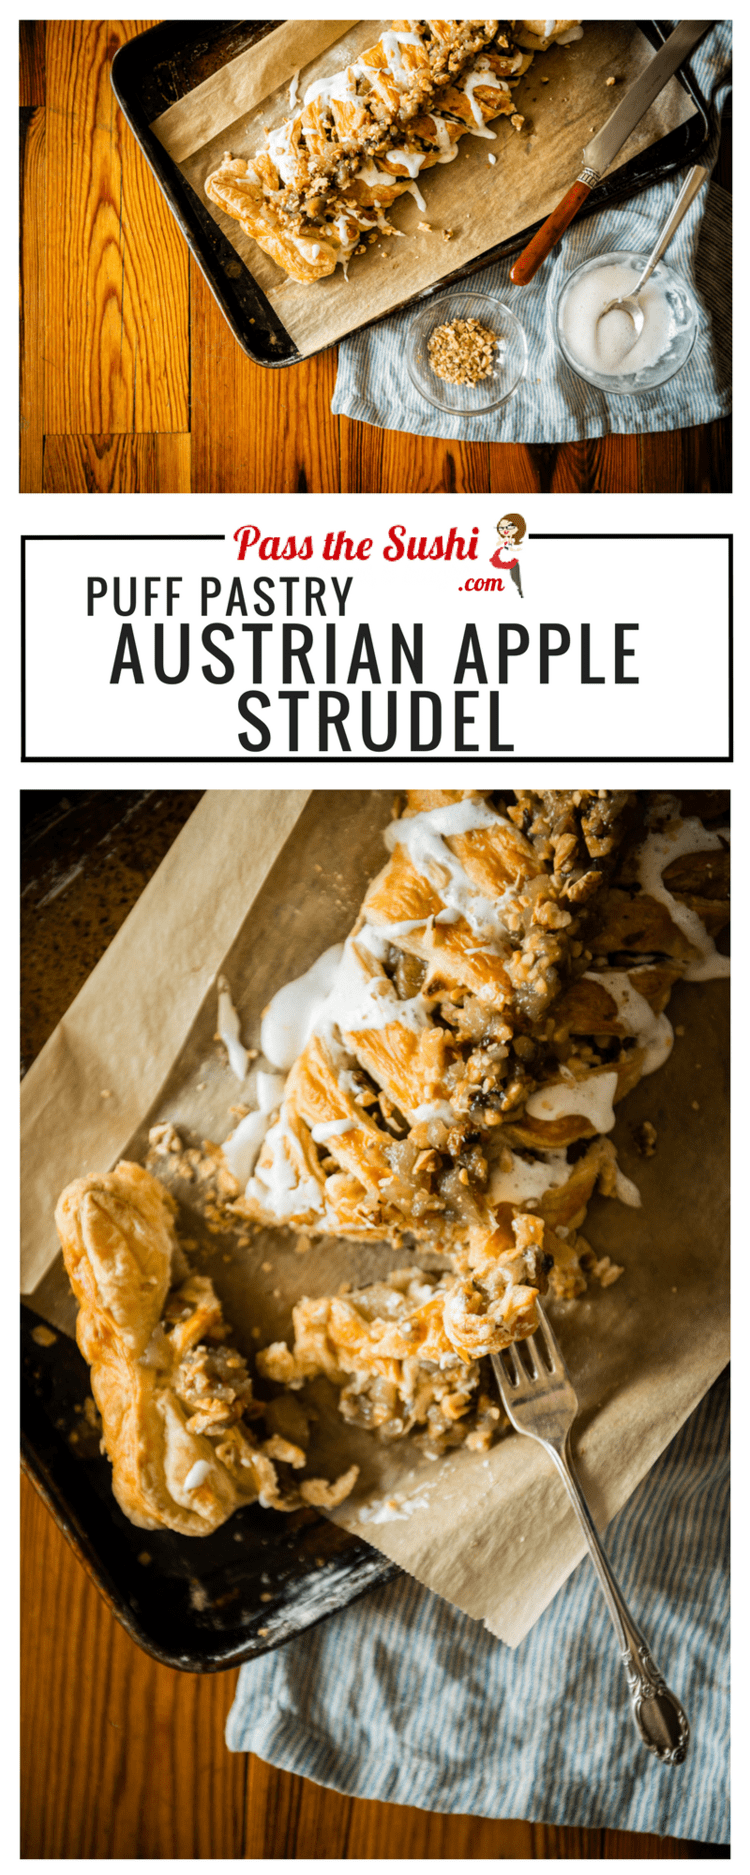 Puff Pastry Austrian Apple Strudel Recipe is a quick copycat recipe that can be made at home with under 10 ingredients! | Kita Roberts PassTheSushi.com